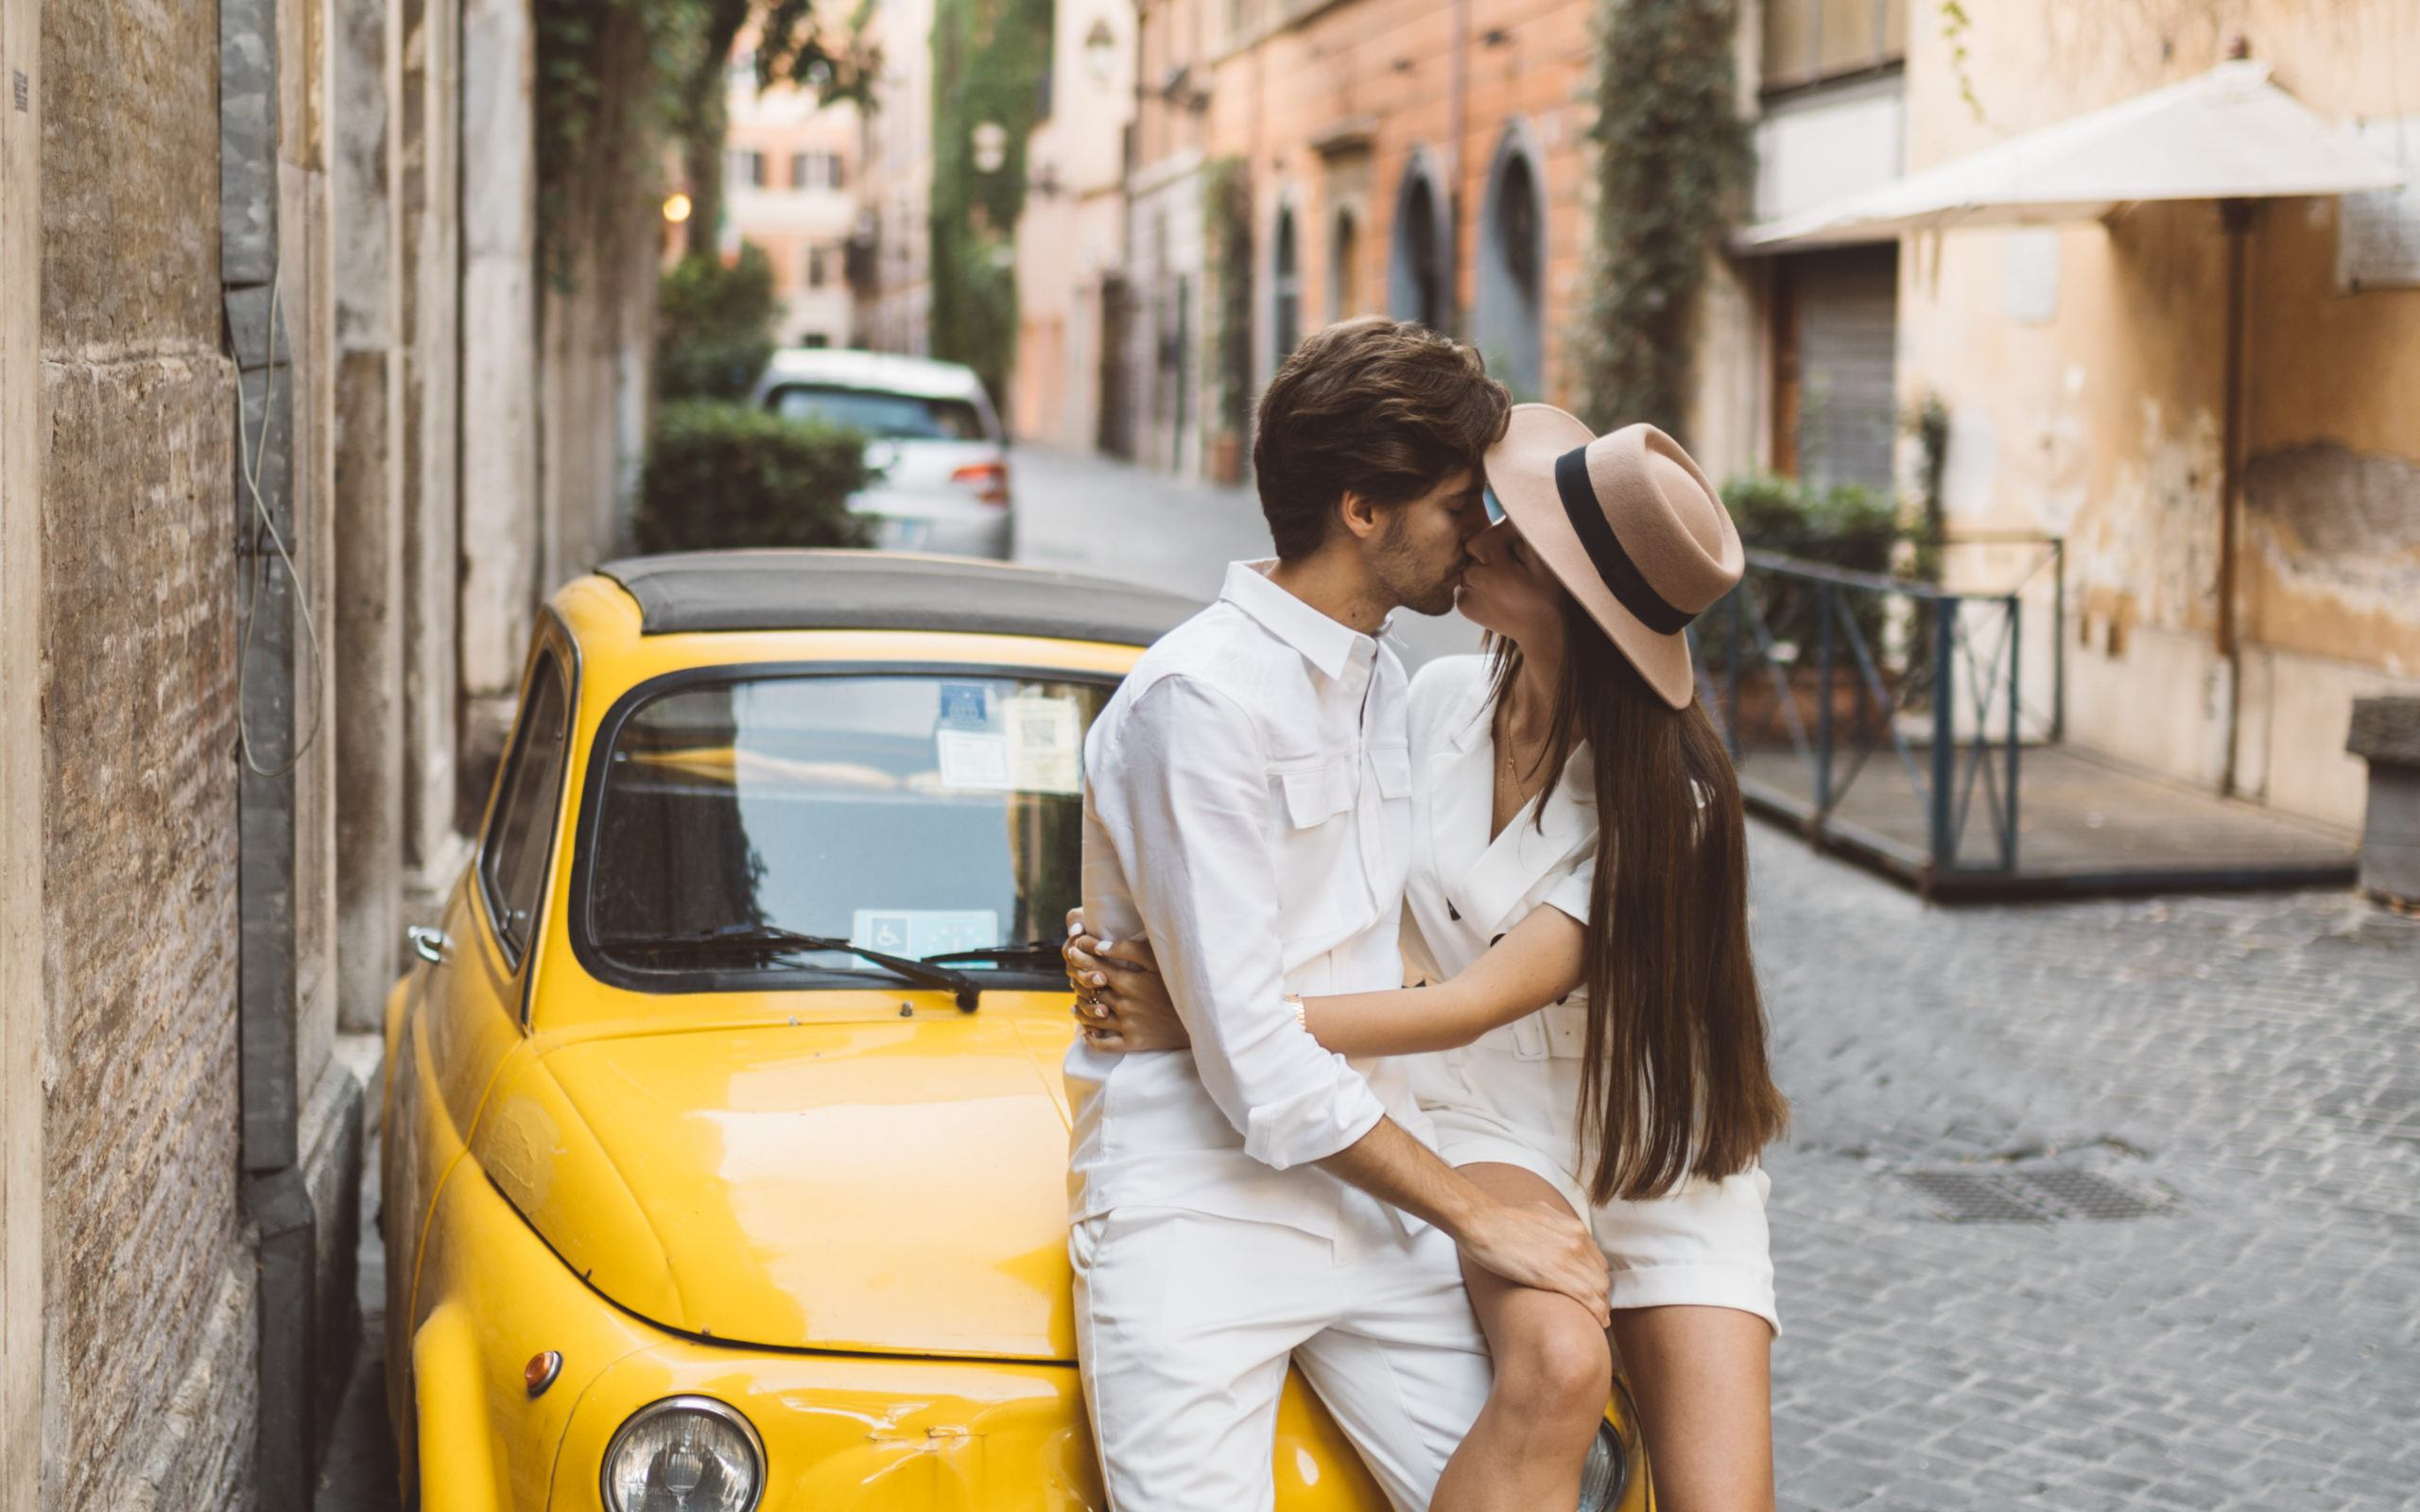 Couple kissing while sitting on a Fiat in Via Margutta in Rome